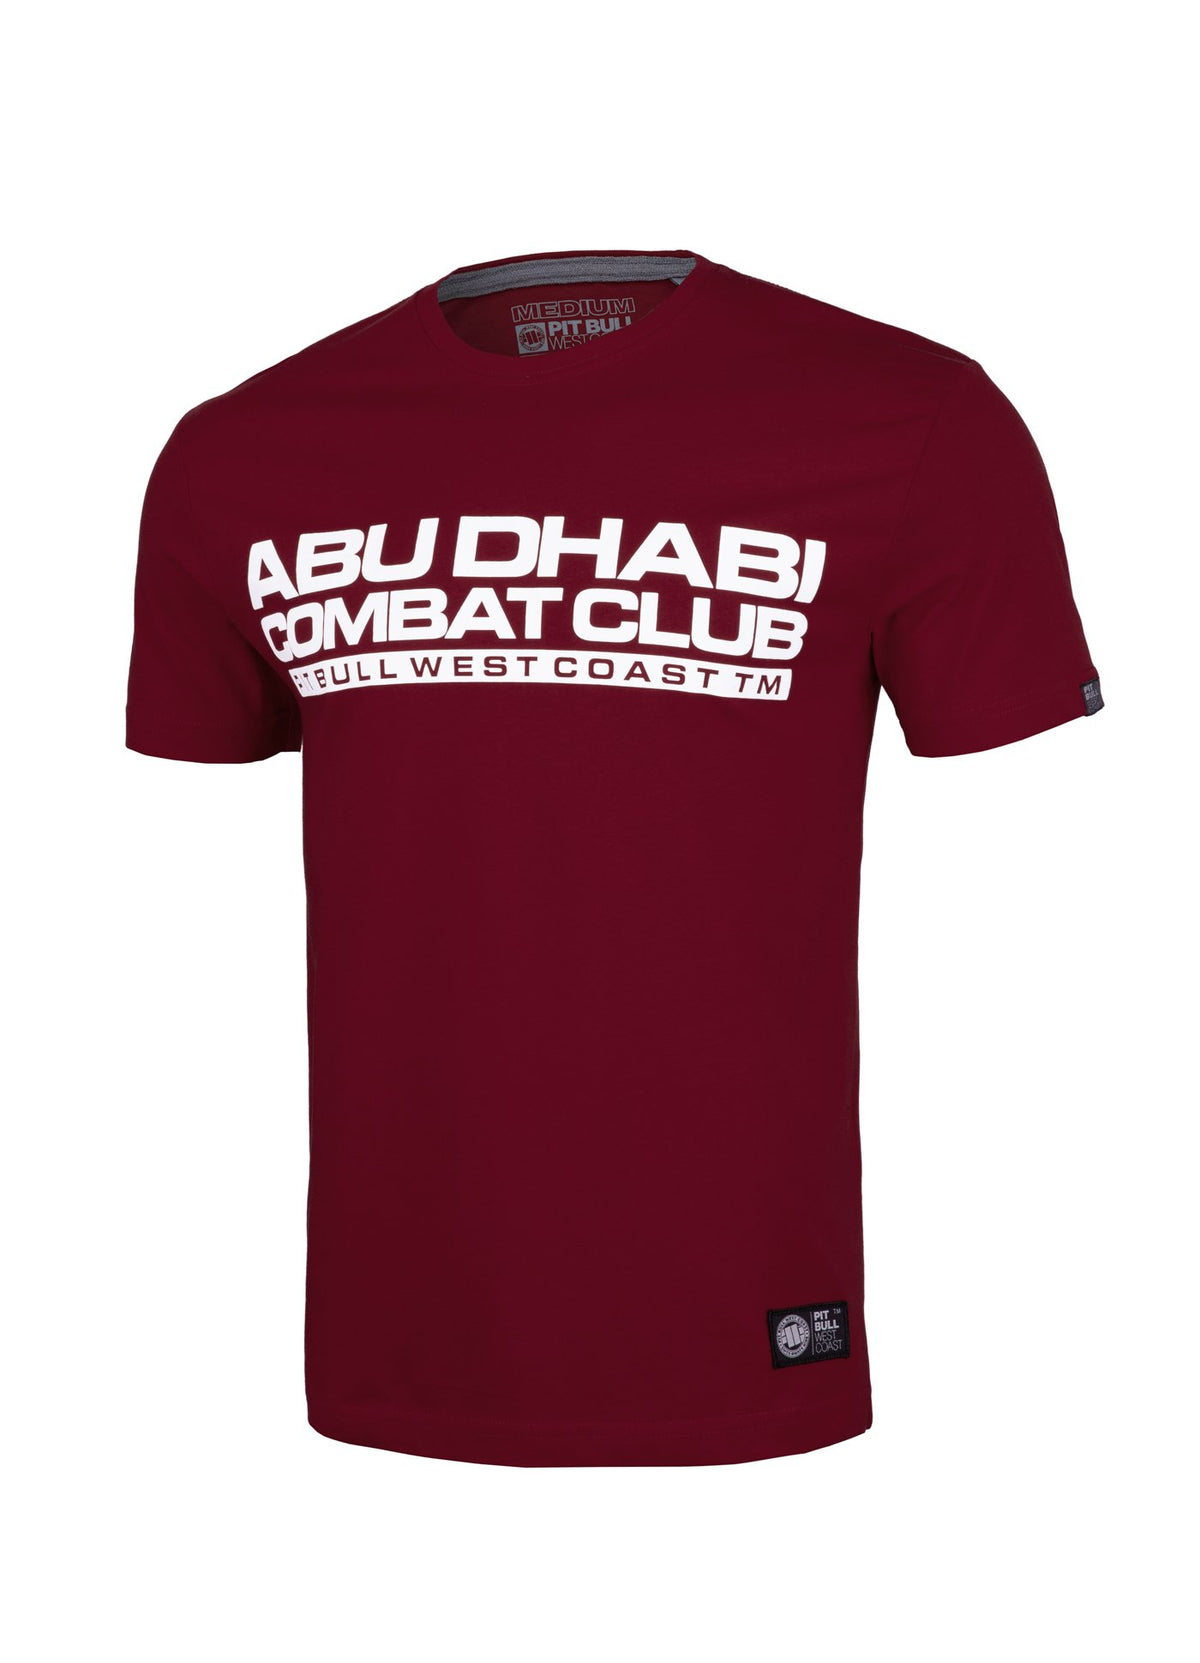 Combat ABU DHABI T-Shirt Burgundy - Pitbull West Coast U.S.A.